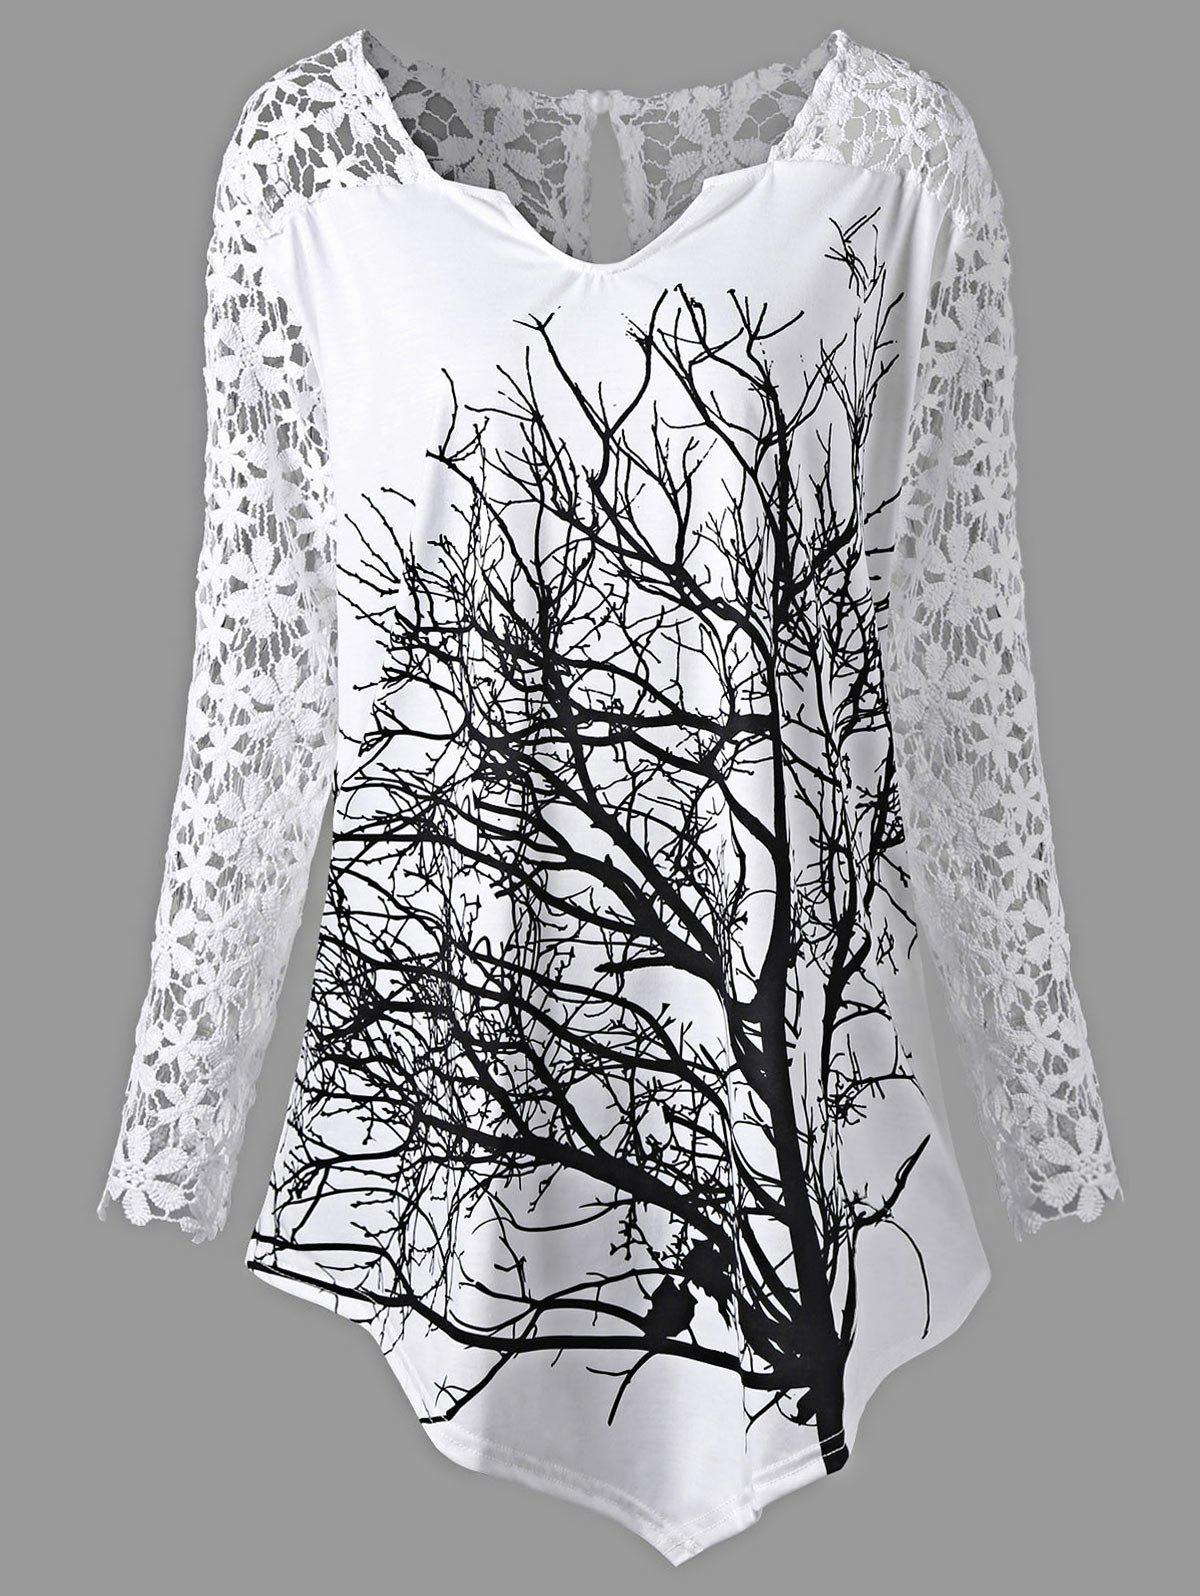 Plus Size Lace Panel Tree Tunic TopWOMEN<br><br>Size: 5XL; Color: WHITE; Material: Polyester,Spandex; Shirt Length: Long; Sleeve Length: Full; Collar: V-Neck; Style: Casual; Season: Fall,Spring; Embellishment: Lace; Pattern Type: Floral; Weight: 0.4100kg; Package Contents: 1 x Top;